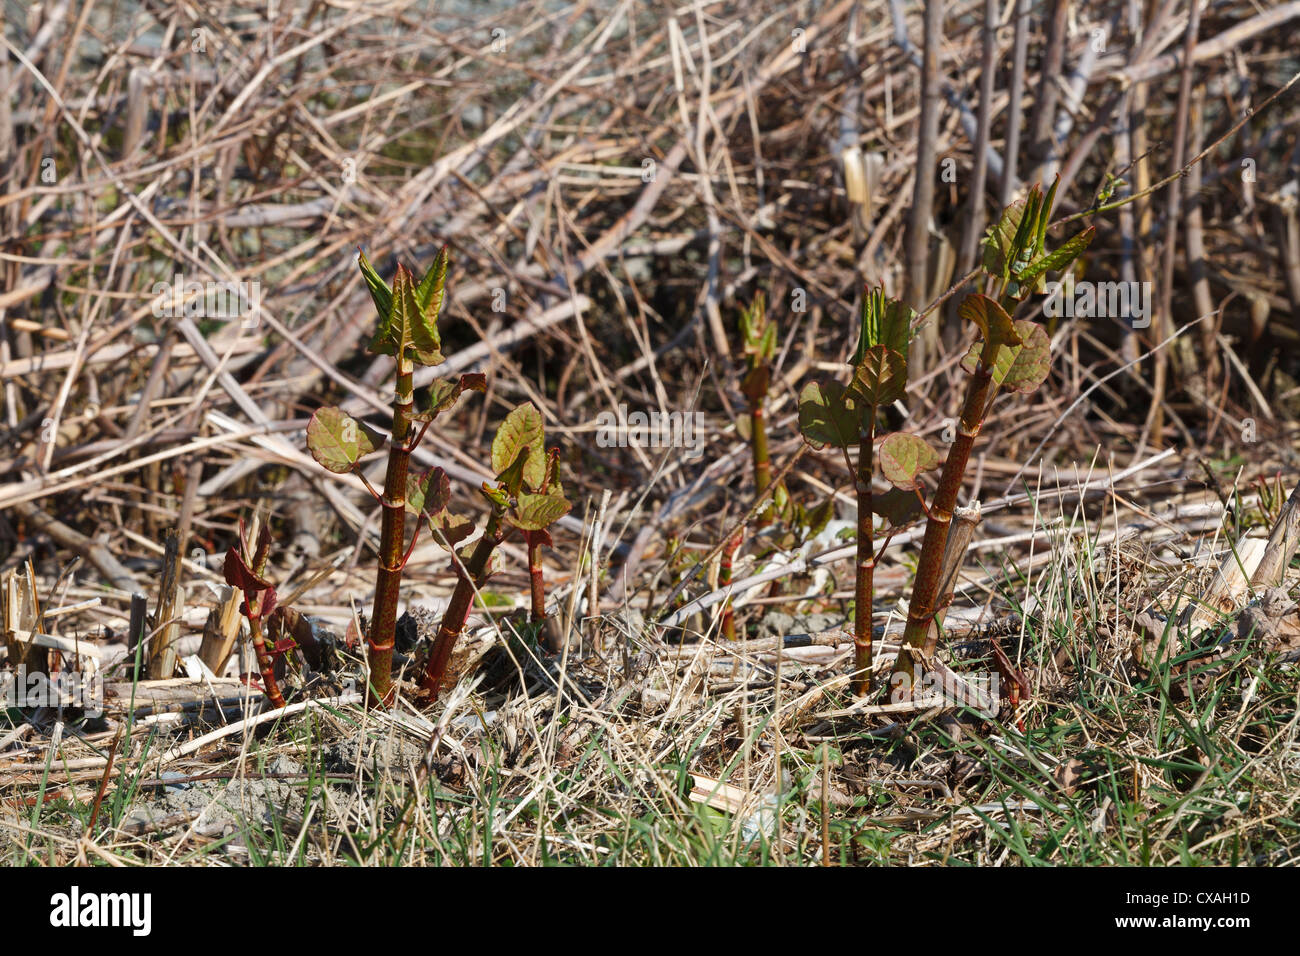 New Spring shoots of Japanese Knotweed (Fallopia japonica). Introduced invasive species. Ceredigion, Wales. March - Stock Image